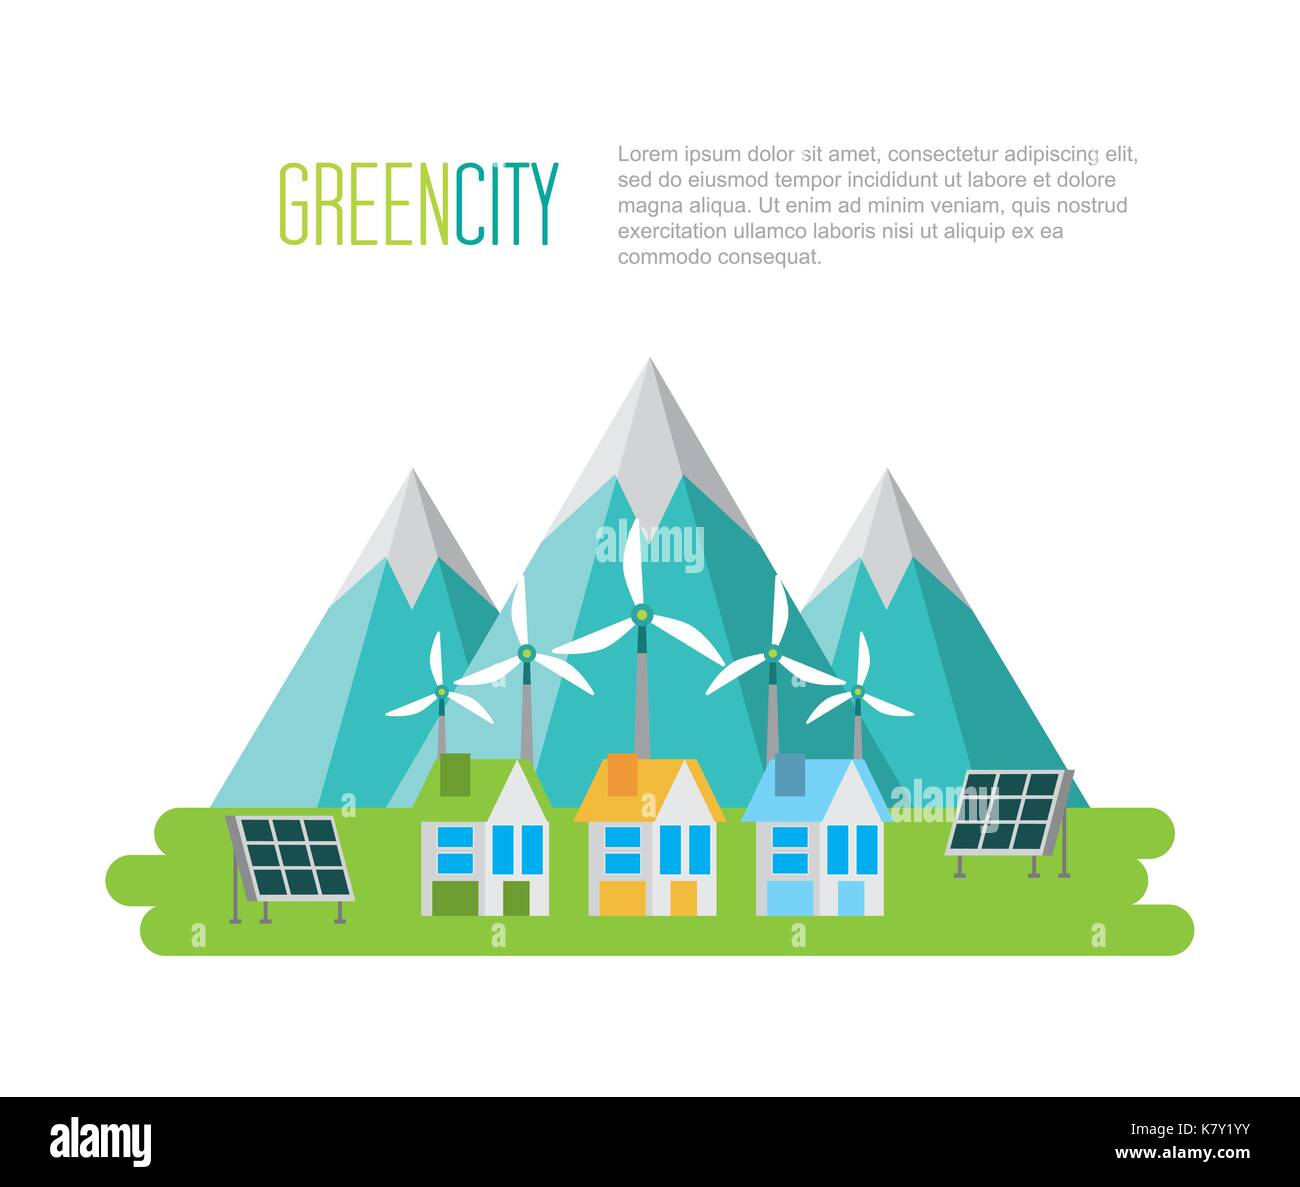 green city sustainable development with environmental conservation - Stock Image